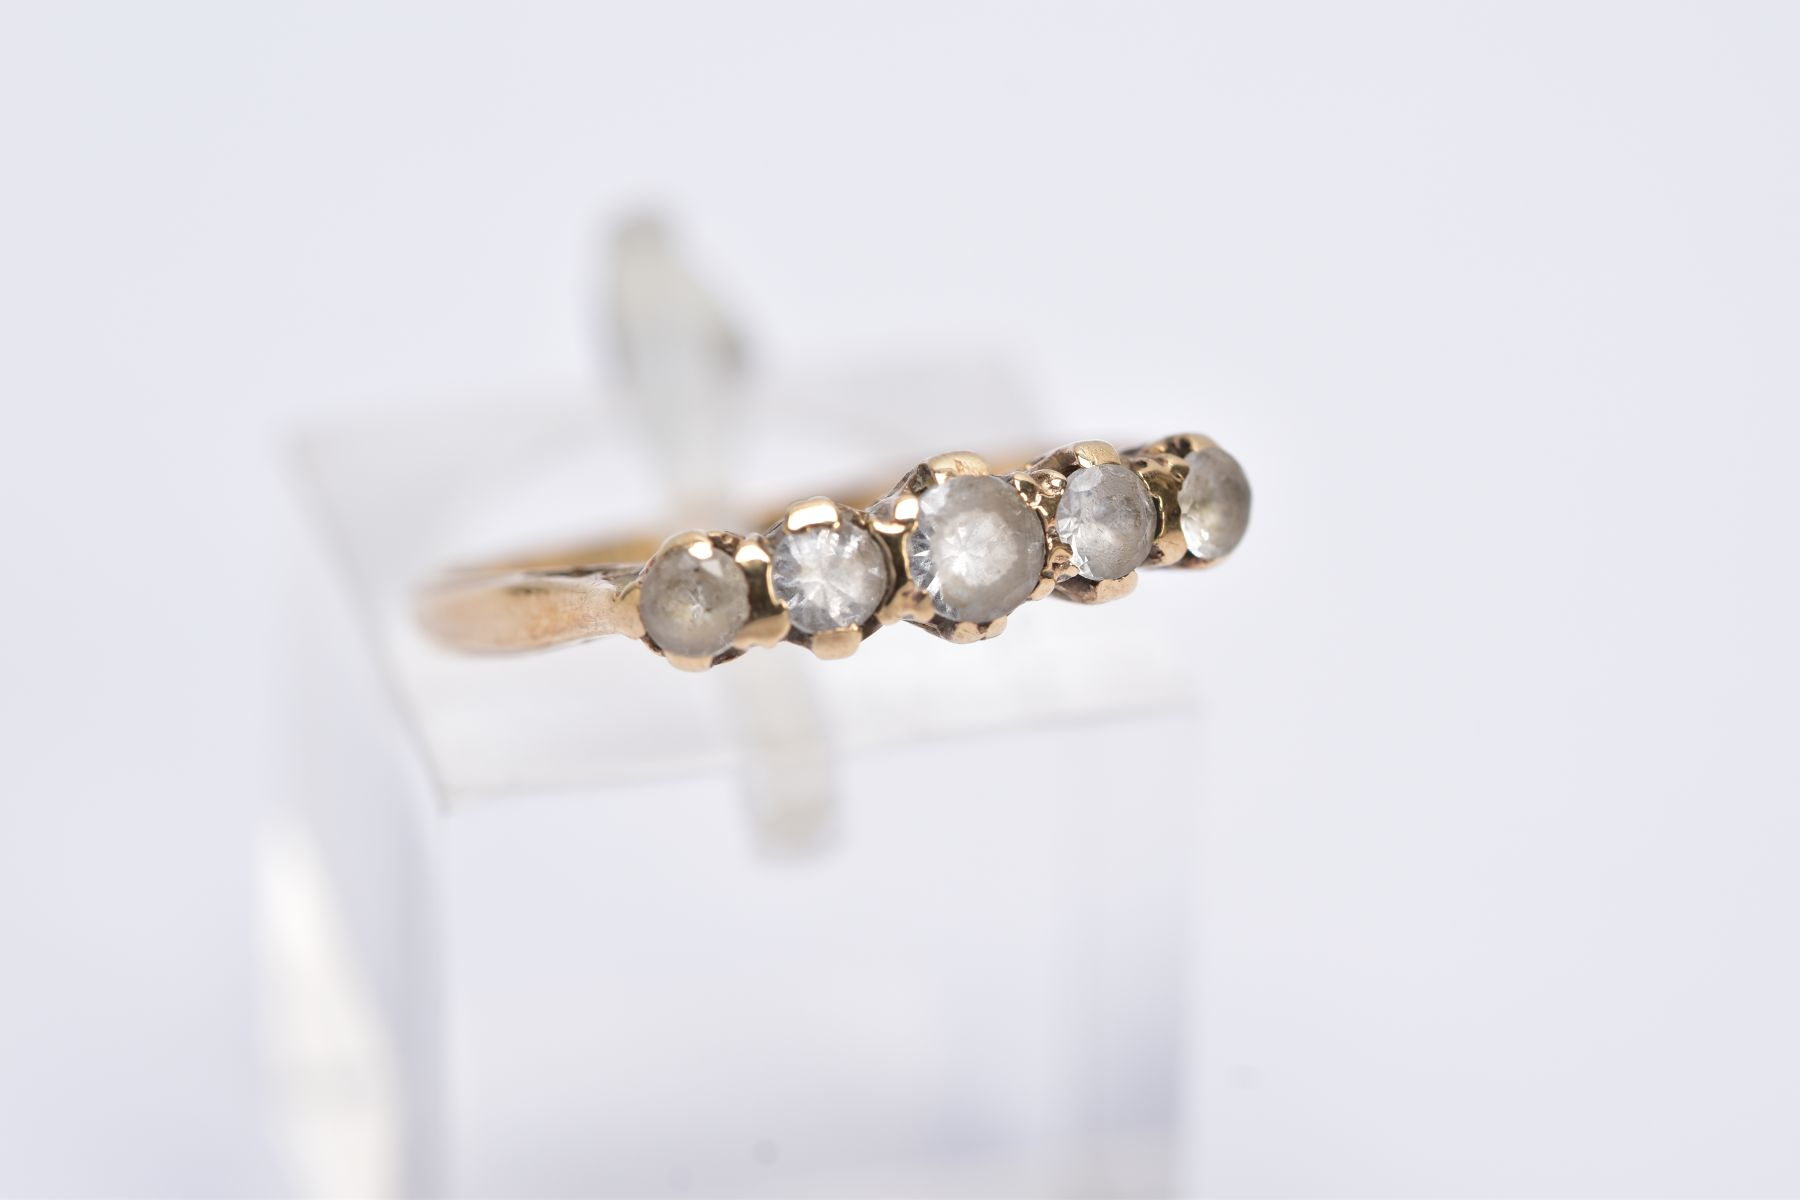 A YELLOW METAL FIVE STONE RING, designed with a row of graduate circular cut colourless spinel's - Image 4 of 4